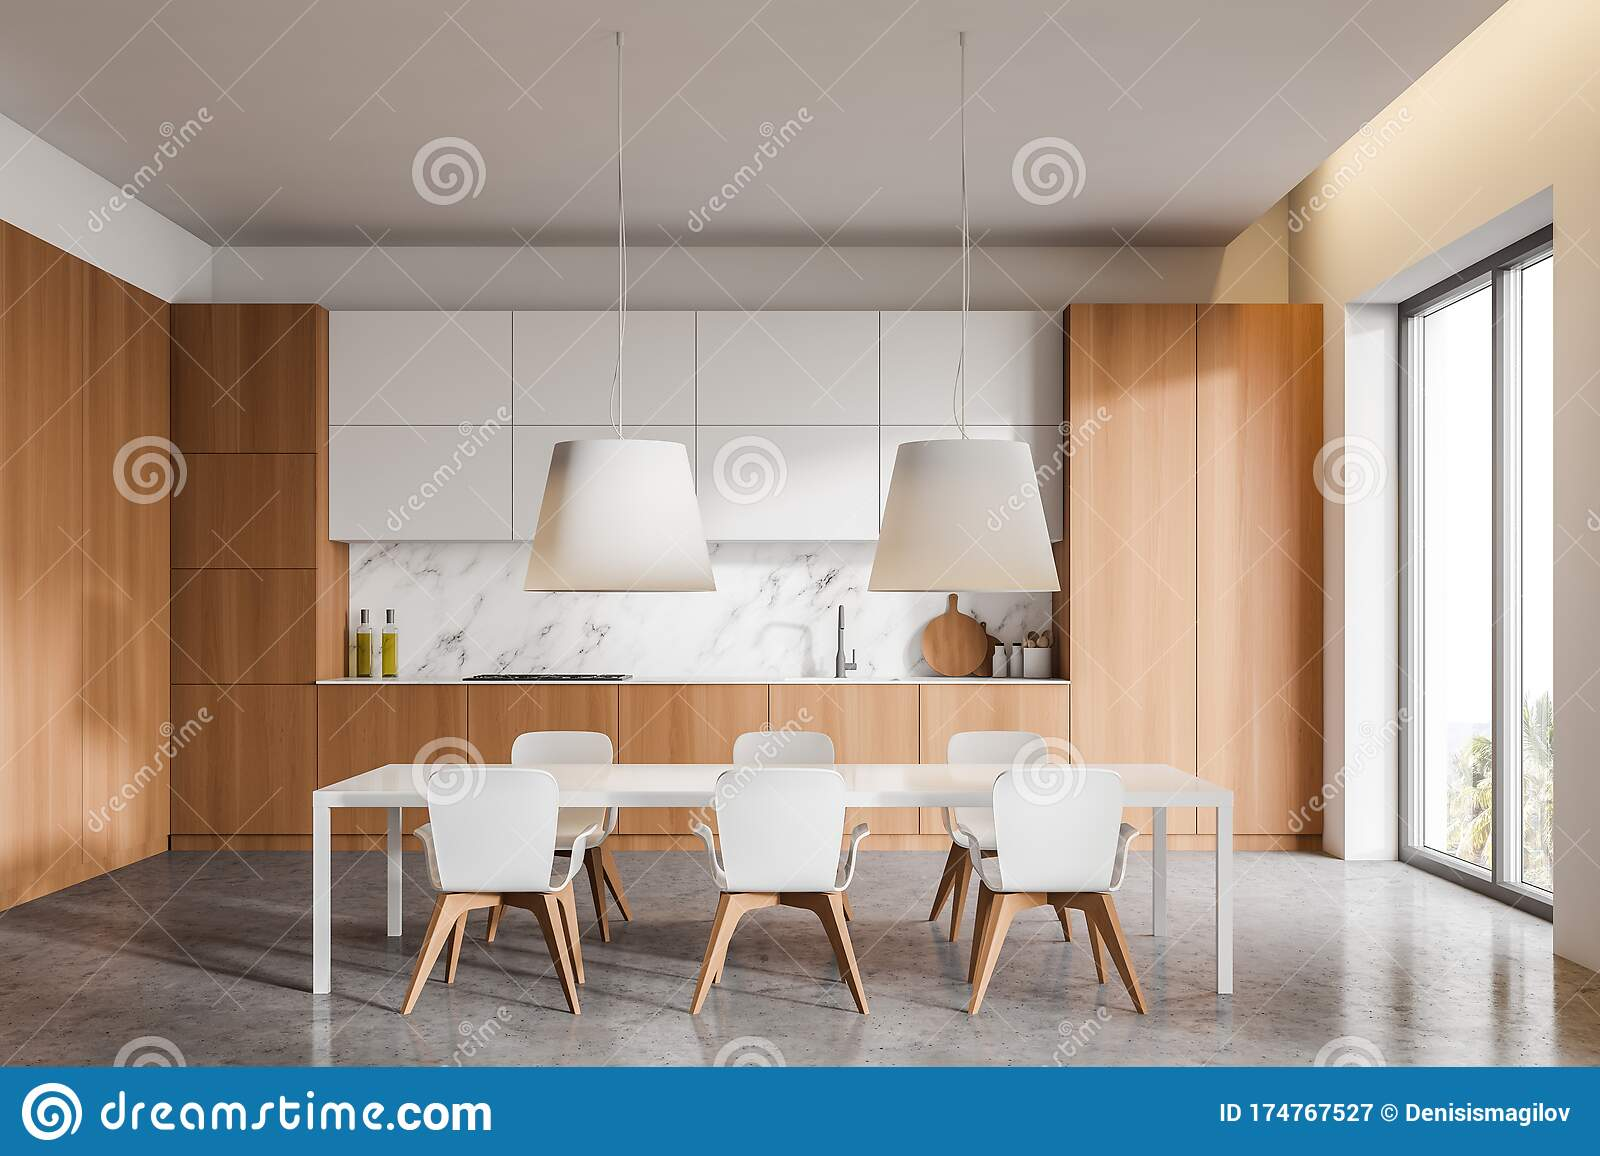 Wooden And White Kitchen With Dining Table Stock Illustration Illustration Of Decorate Comfort 174767527